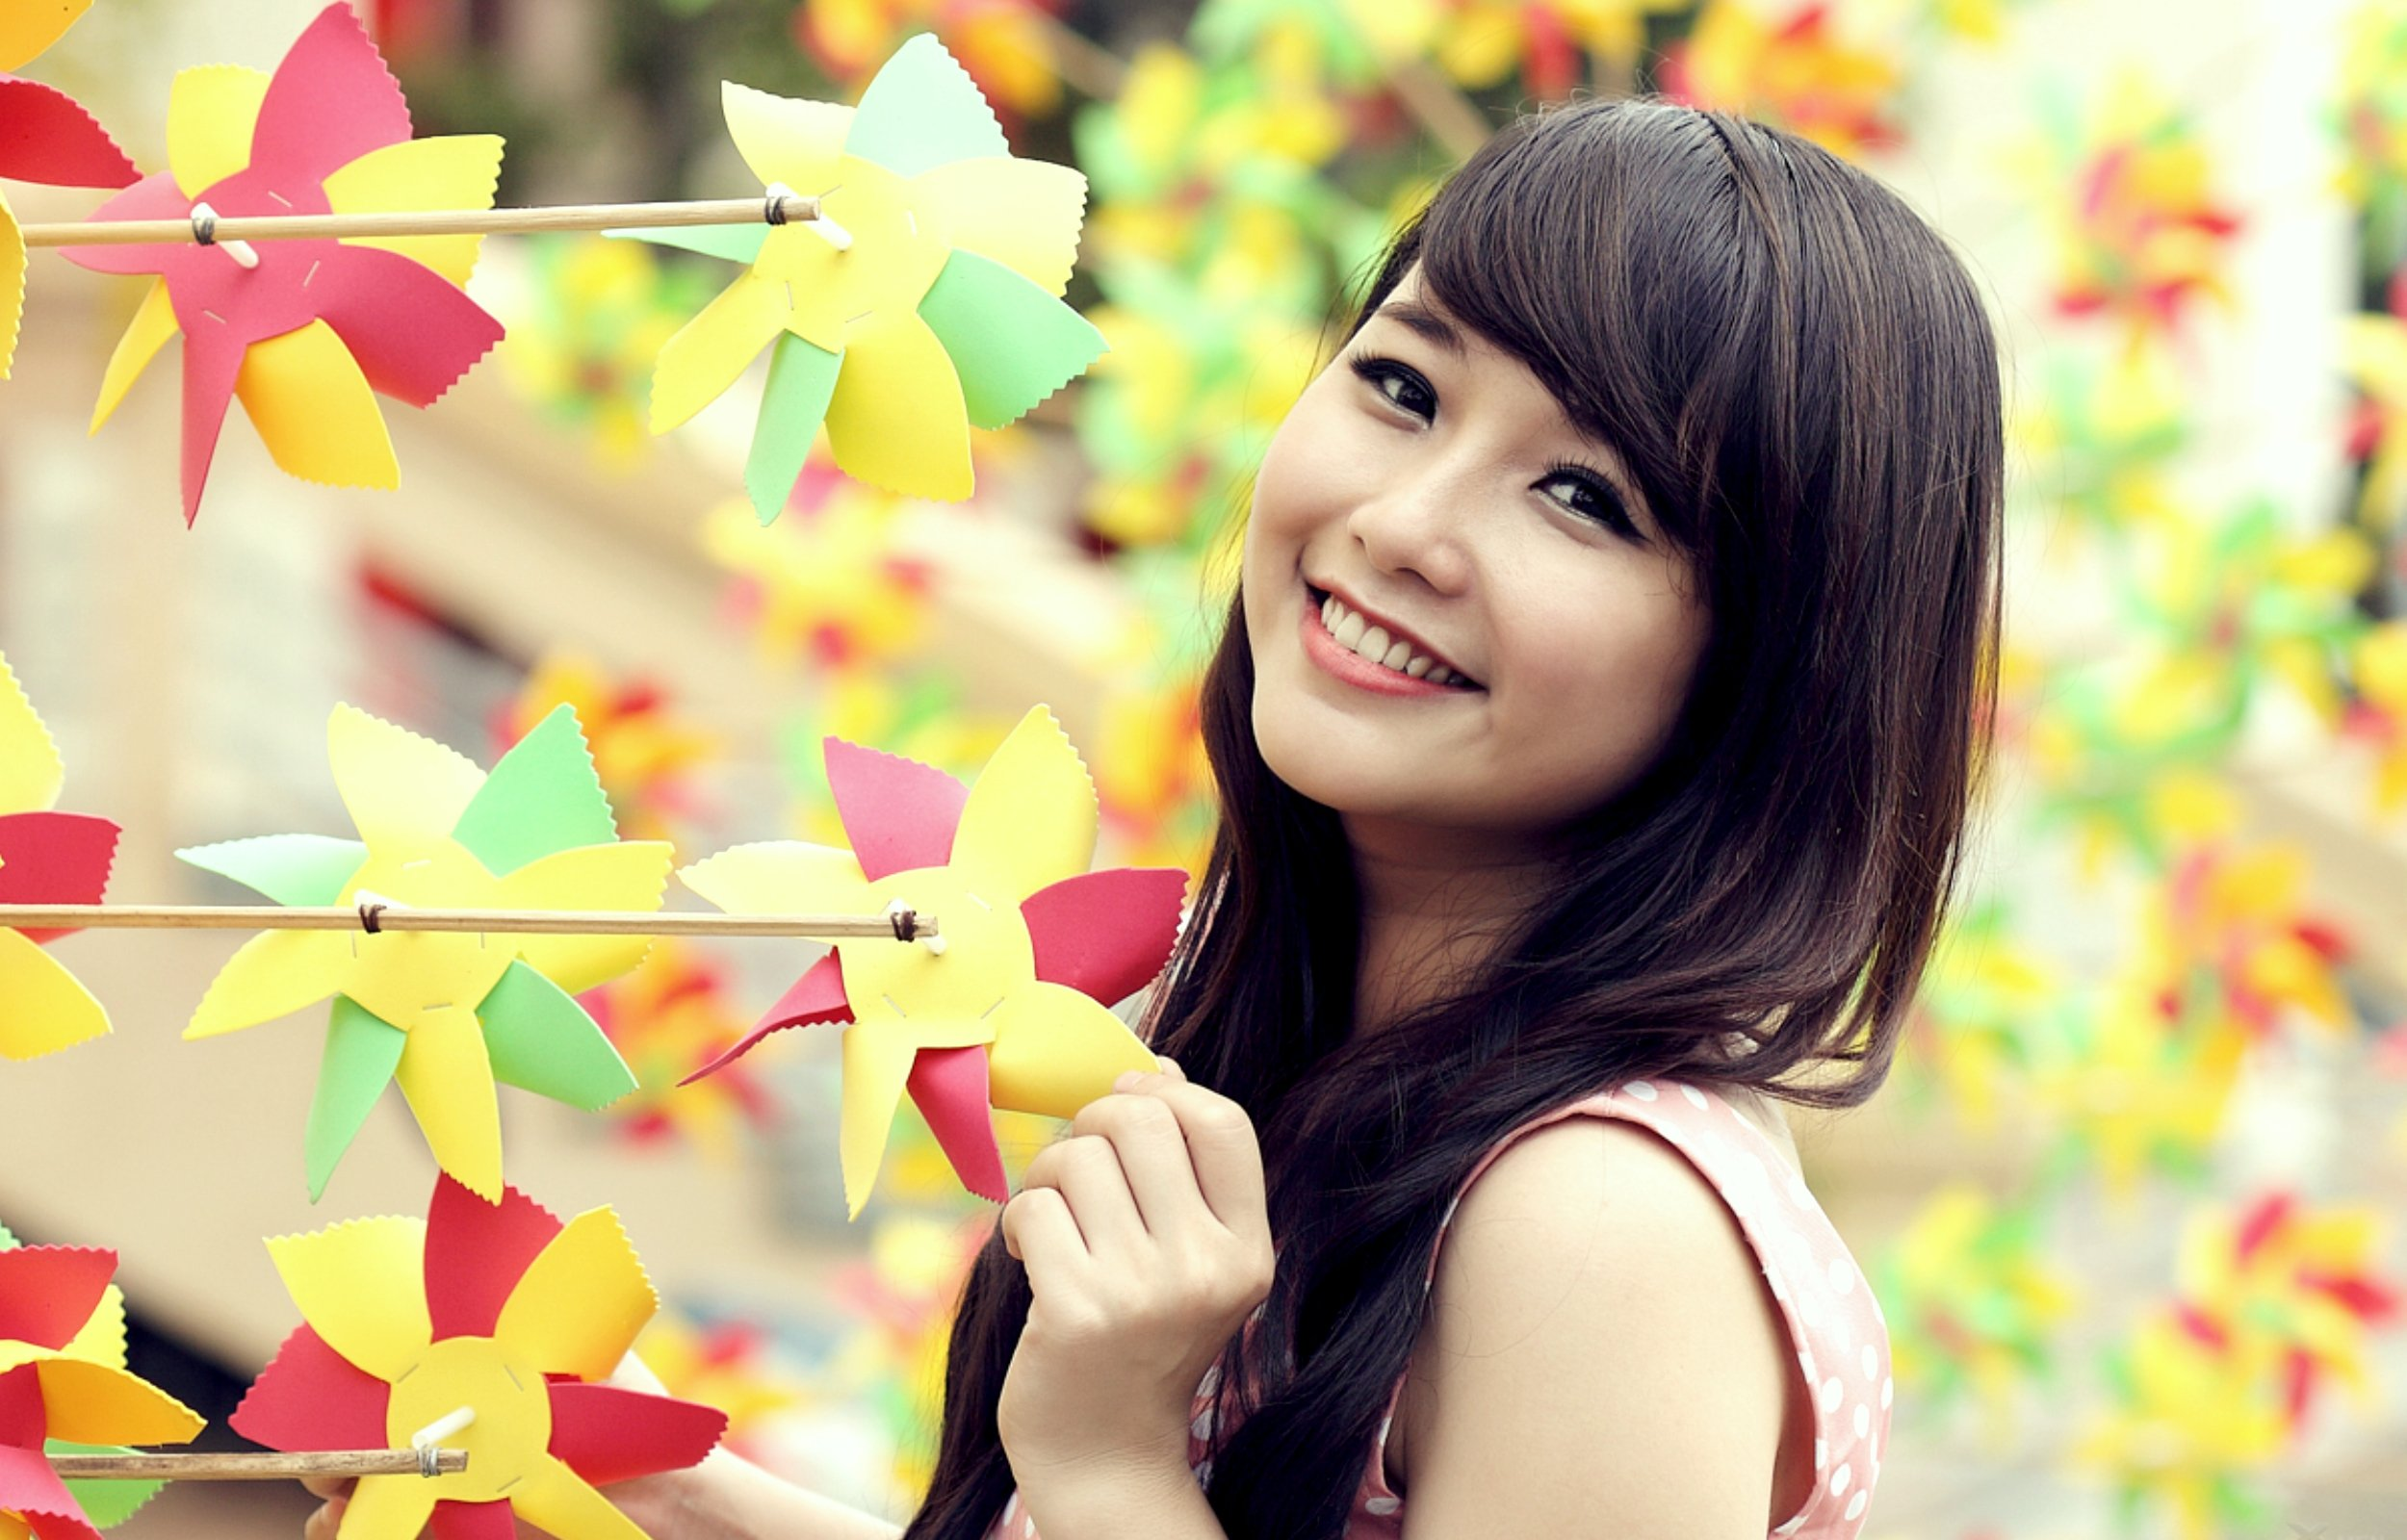 Cute Girl With Smiley Face 2500x1600 13040 HD Wallpaper Res 2500x1600